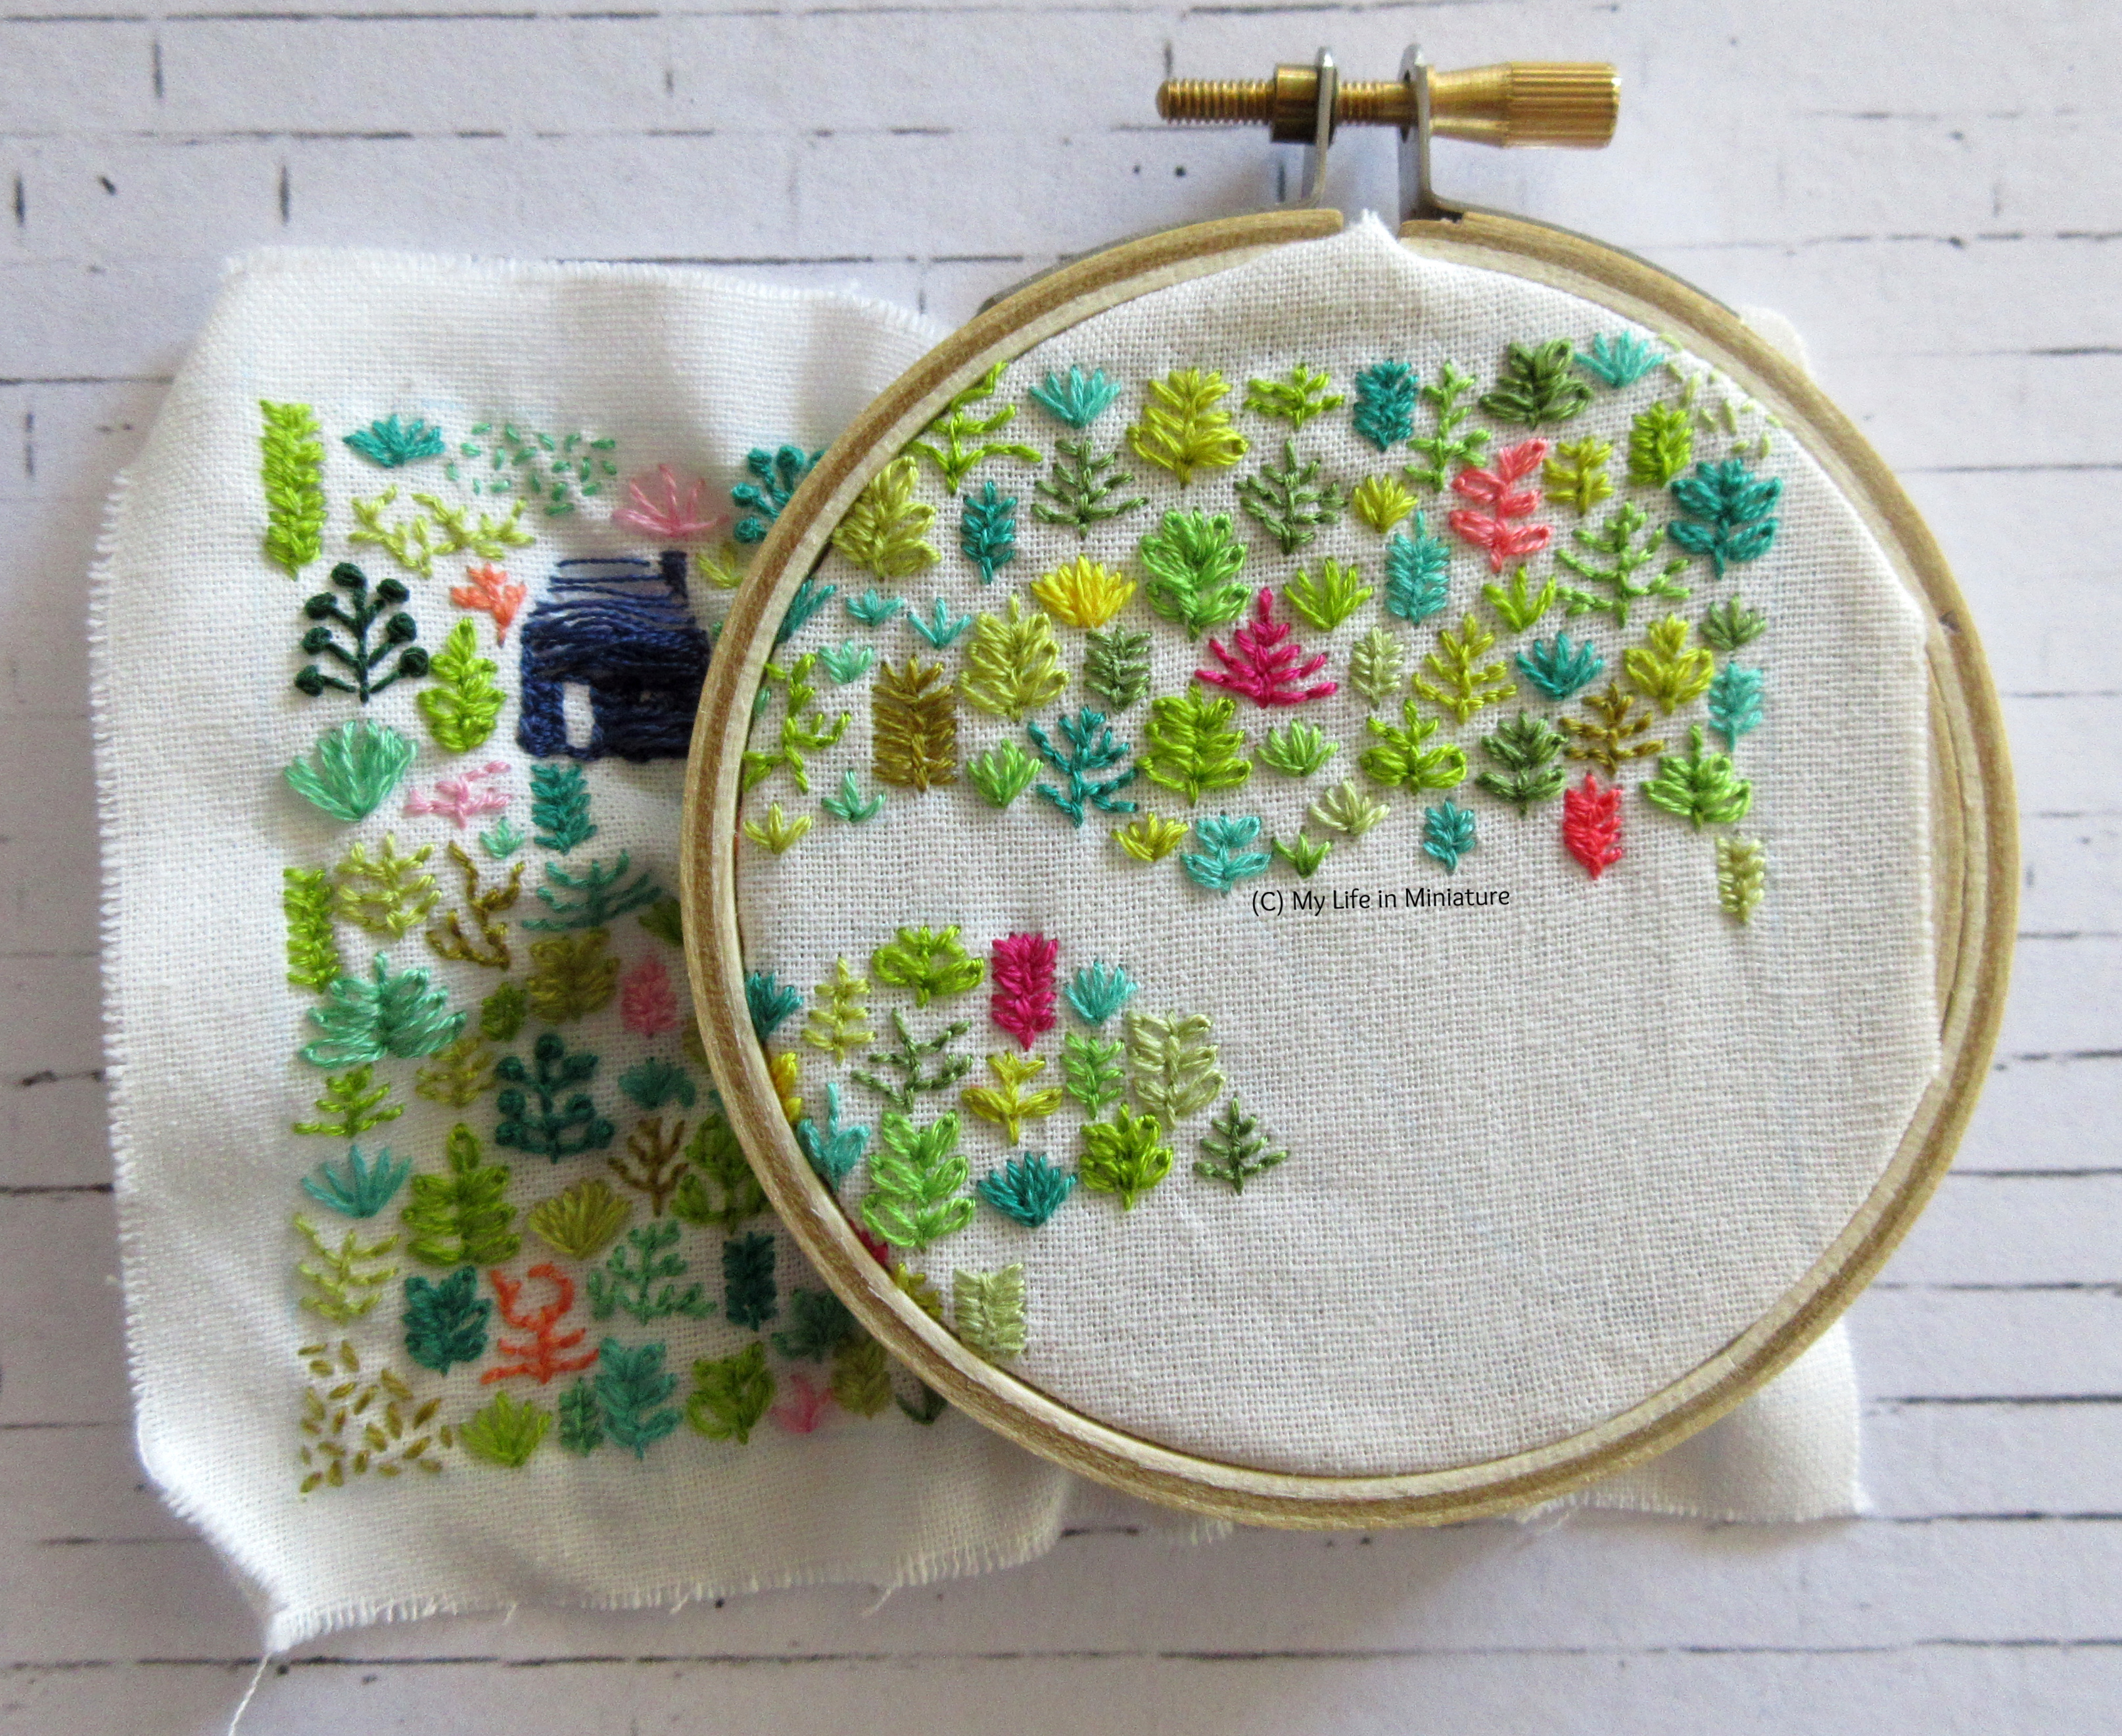 White fabric is in an embroidery hoop. Stitched on it is a small navy blue house, and an assortment of plants in different colours. The hoop is in the top-right of the fabric, and is about half-full of plants.